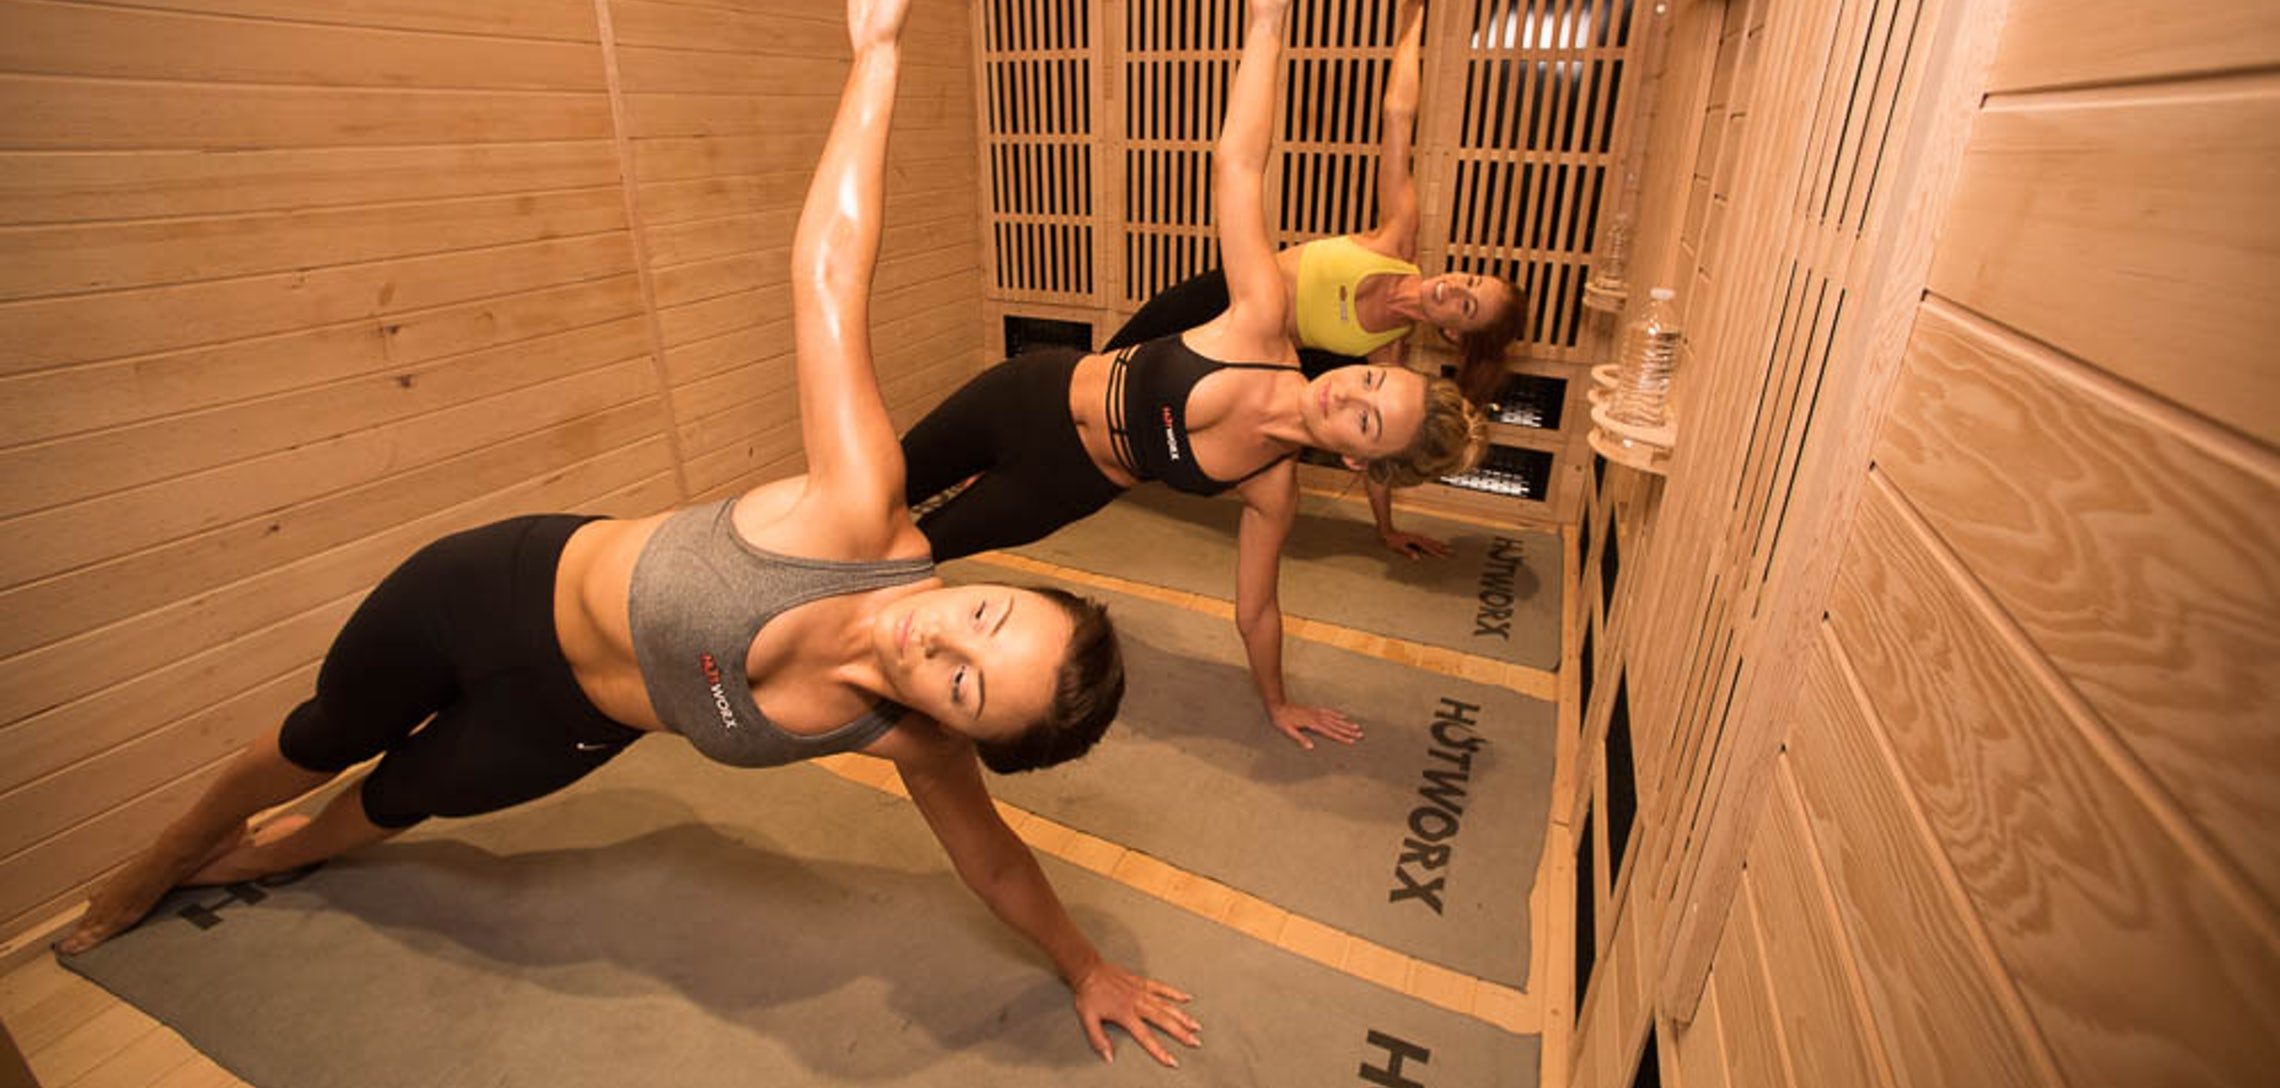 We tried HOTWORX, Baton Rouge's hottest new exercise craze